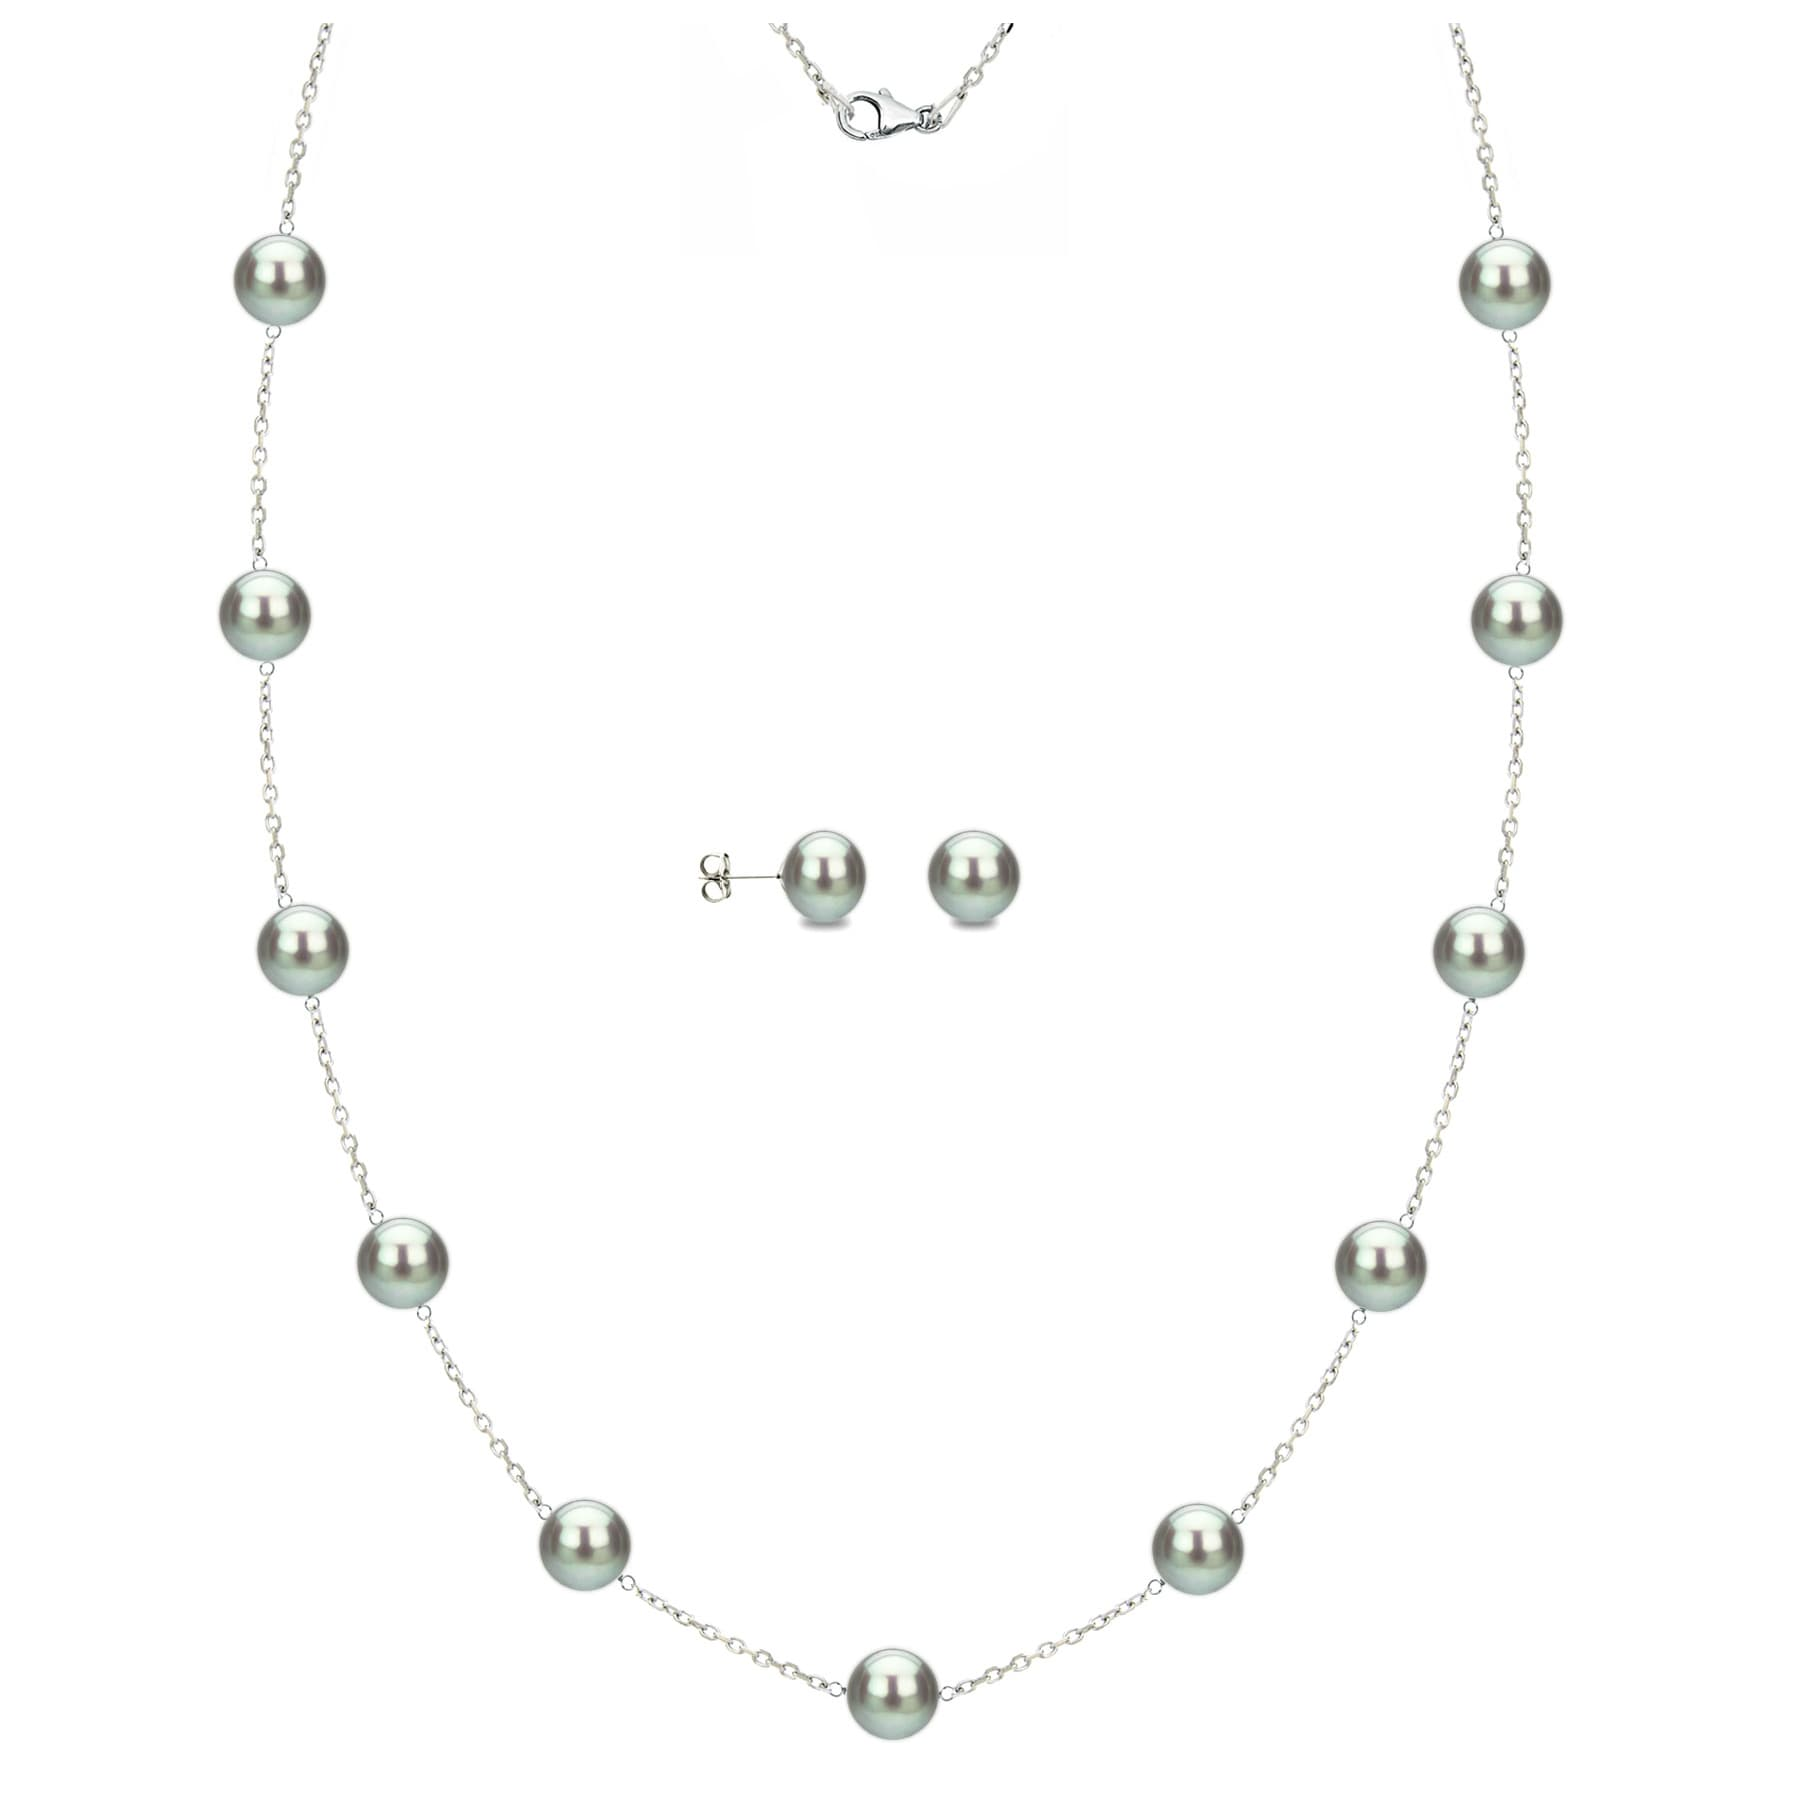 Jewelry Necklaces Pearls Sterling Silver Rhodium 4-5mm White FWC Pearl Necklace